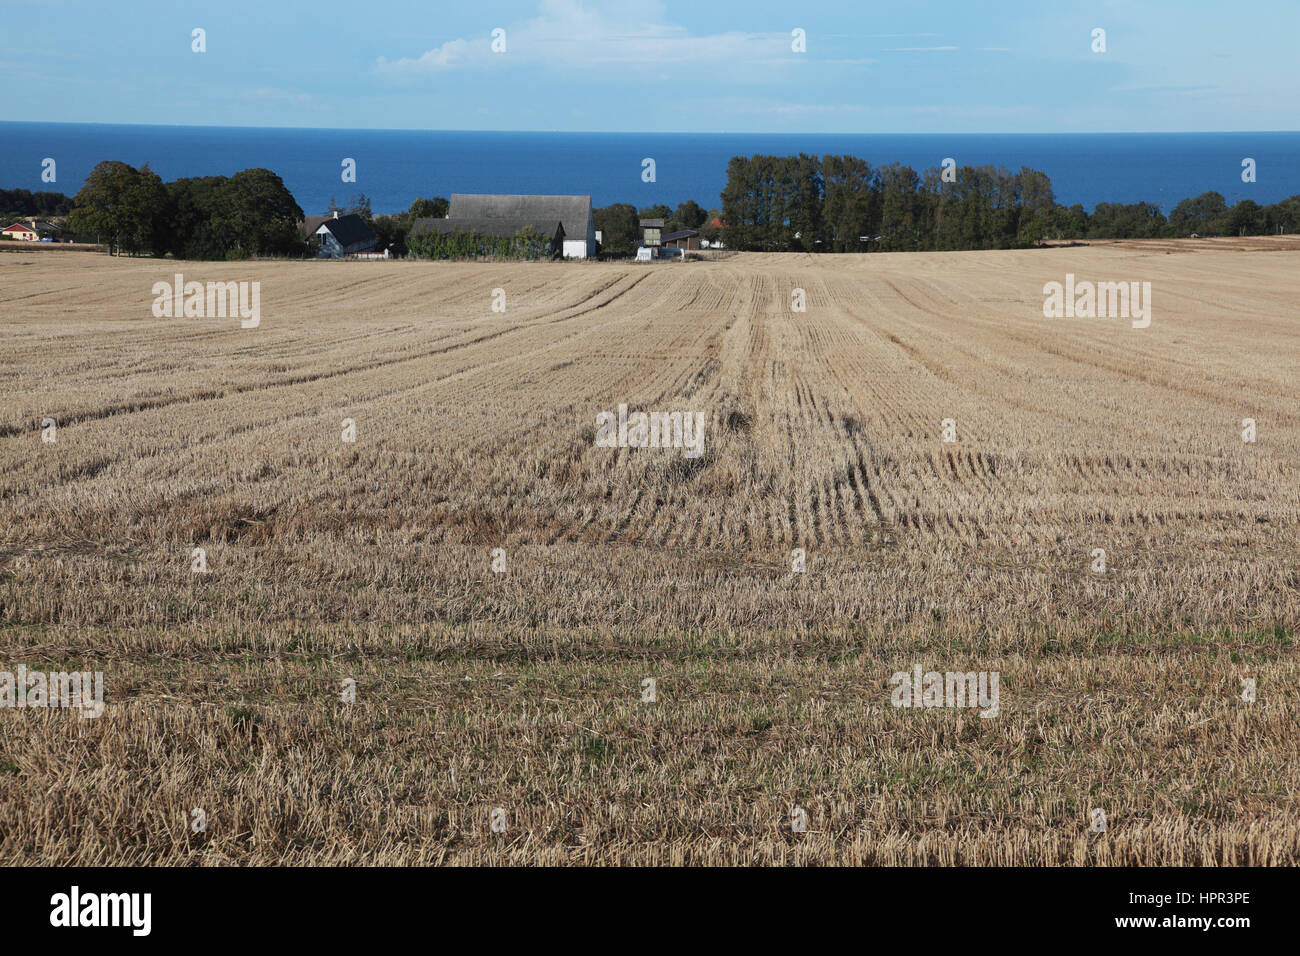 The Baltic Sea seen from agricultural land behind Svaneke, a small town on the island of Bornholm, Denmark Stock Photo